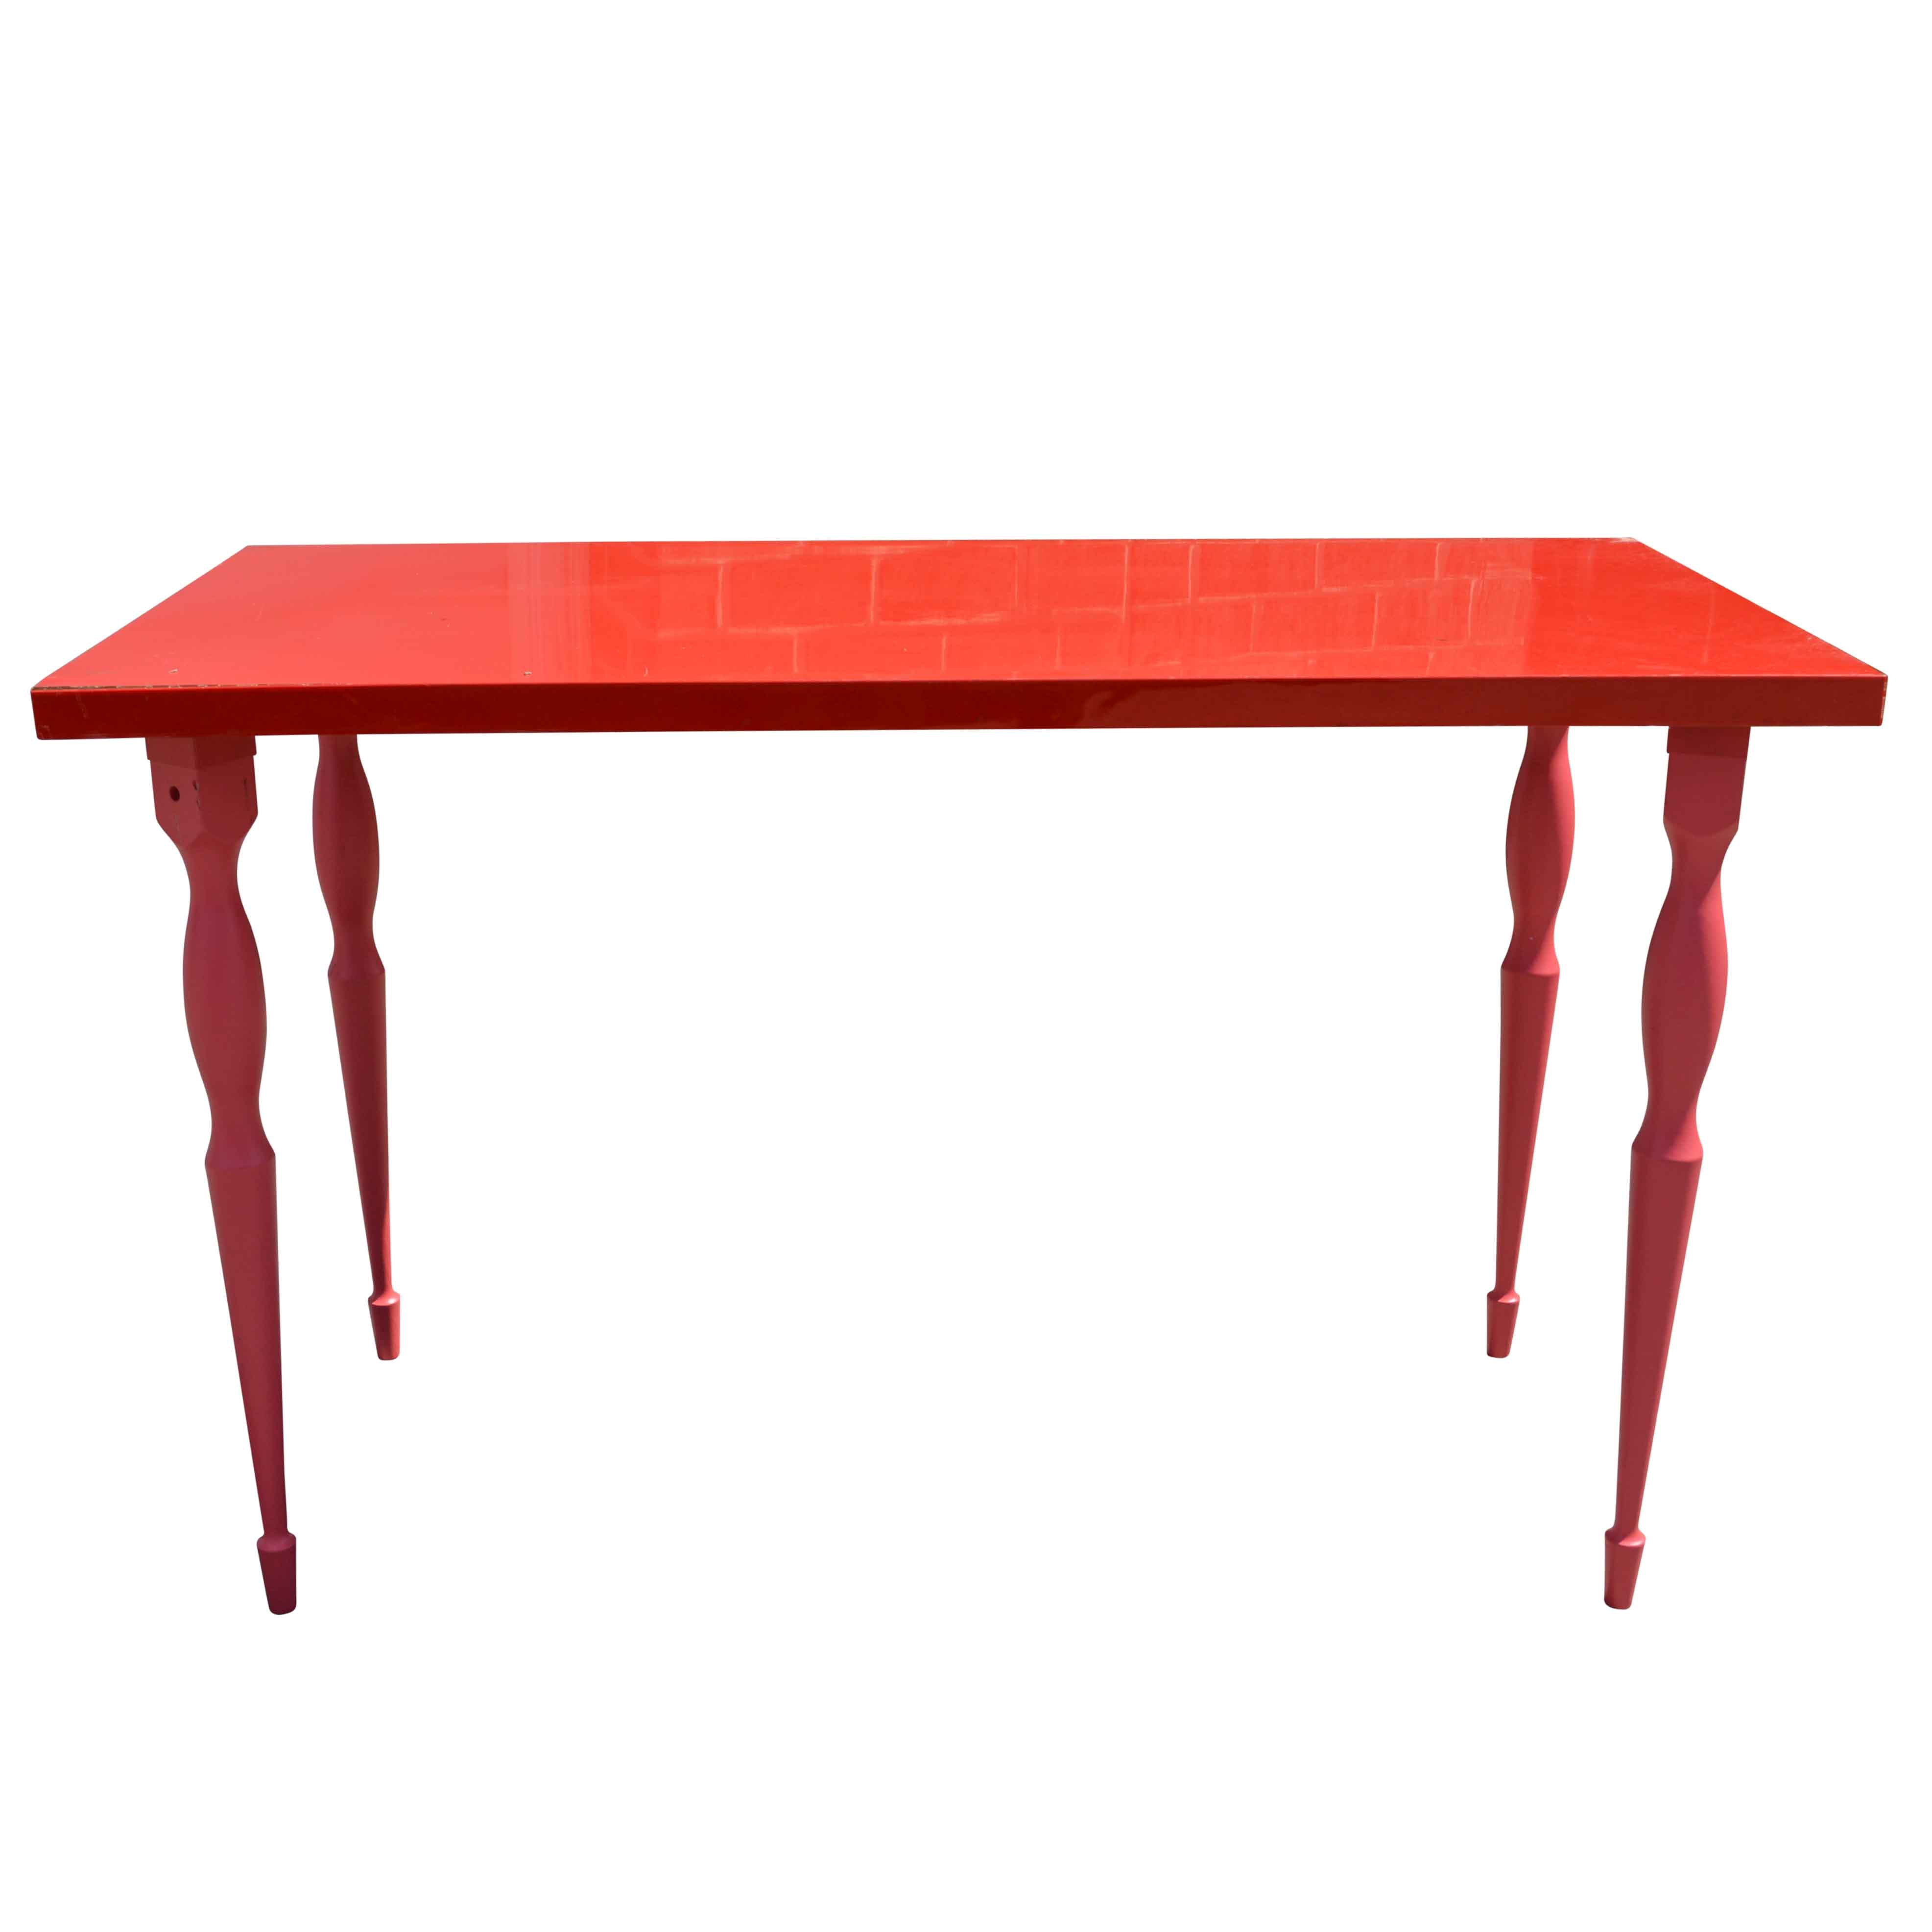 """Contemporary Red Painted """"Vika Amon"""" Table by IKEA"""